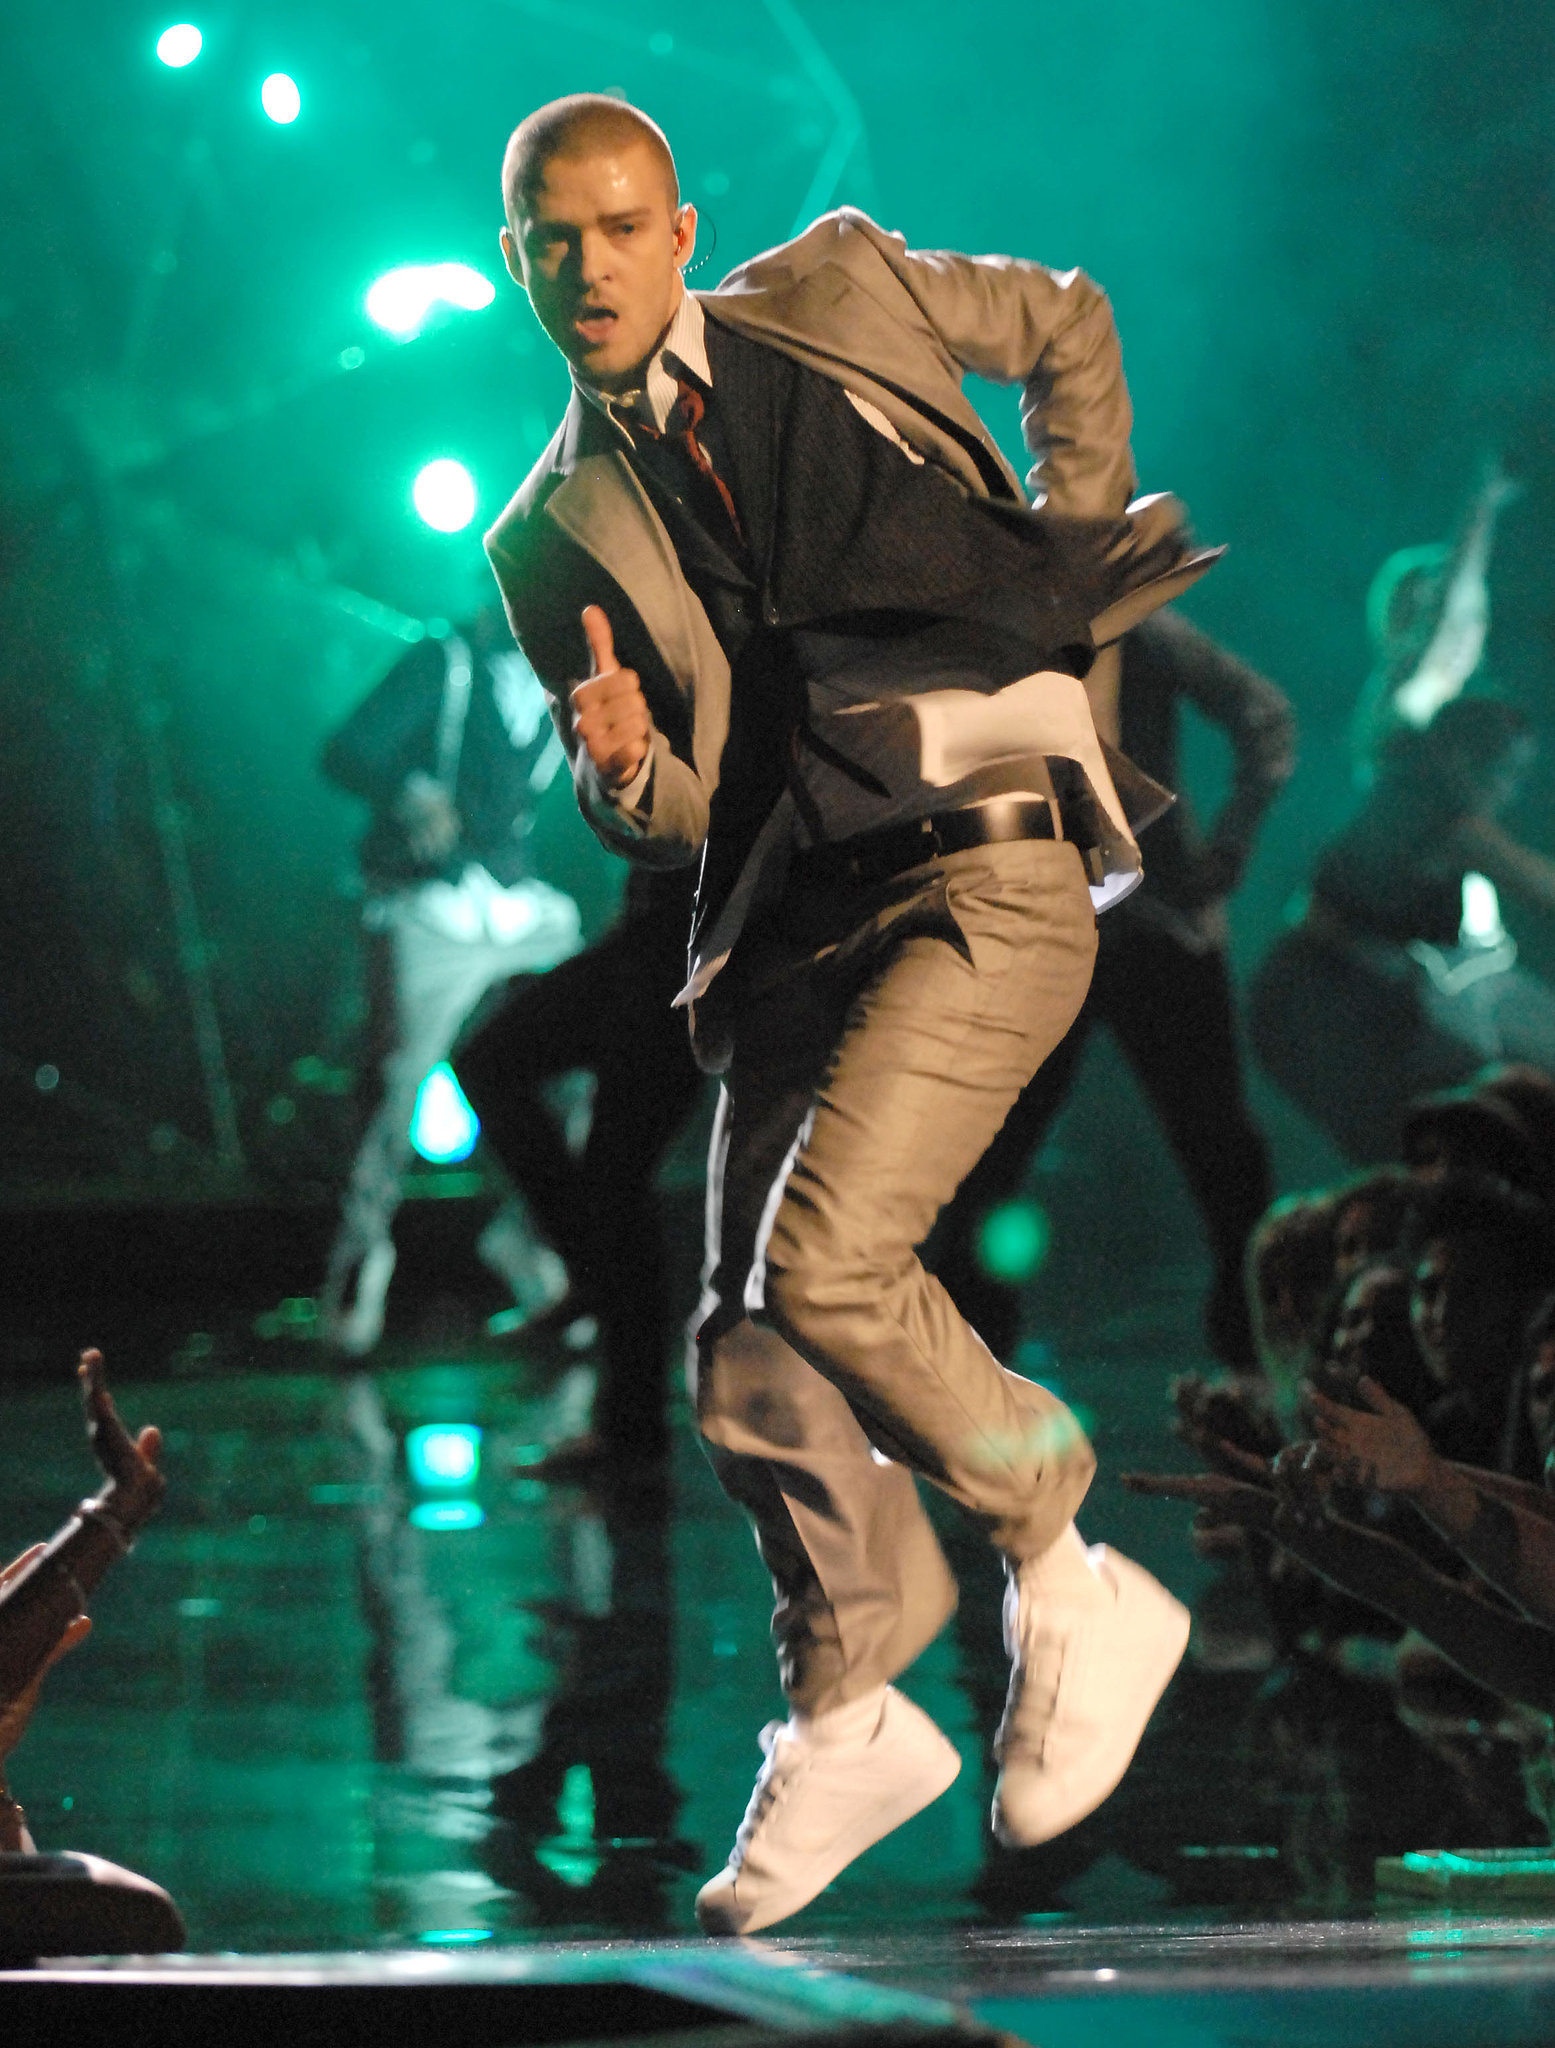 When he performed at the 2006 VMAs.